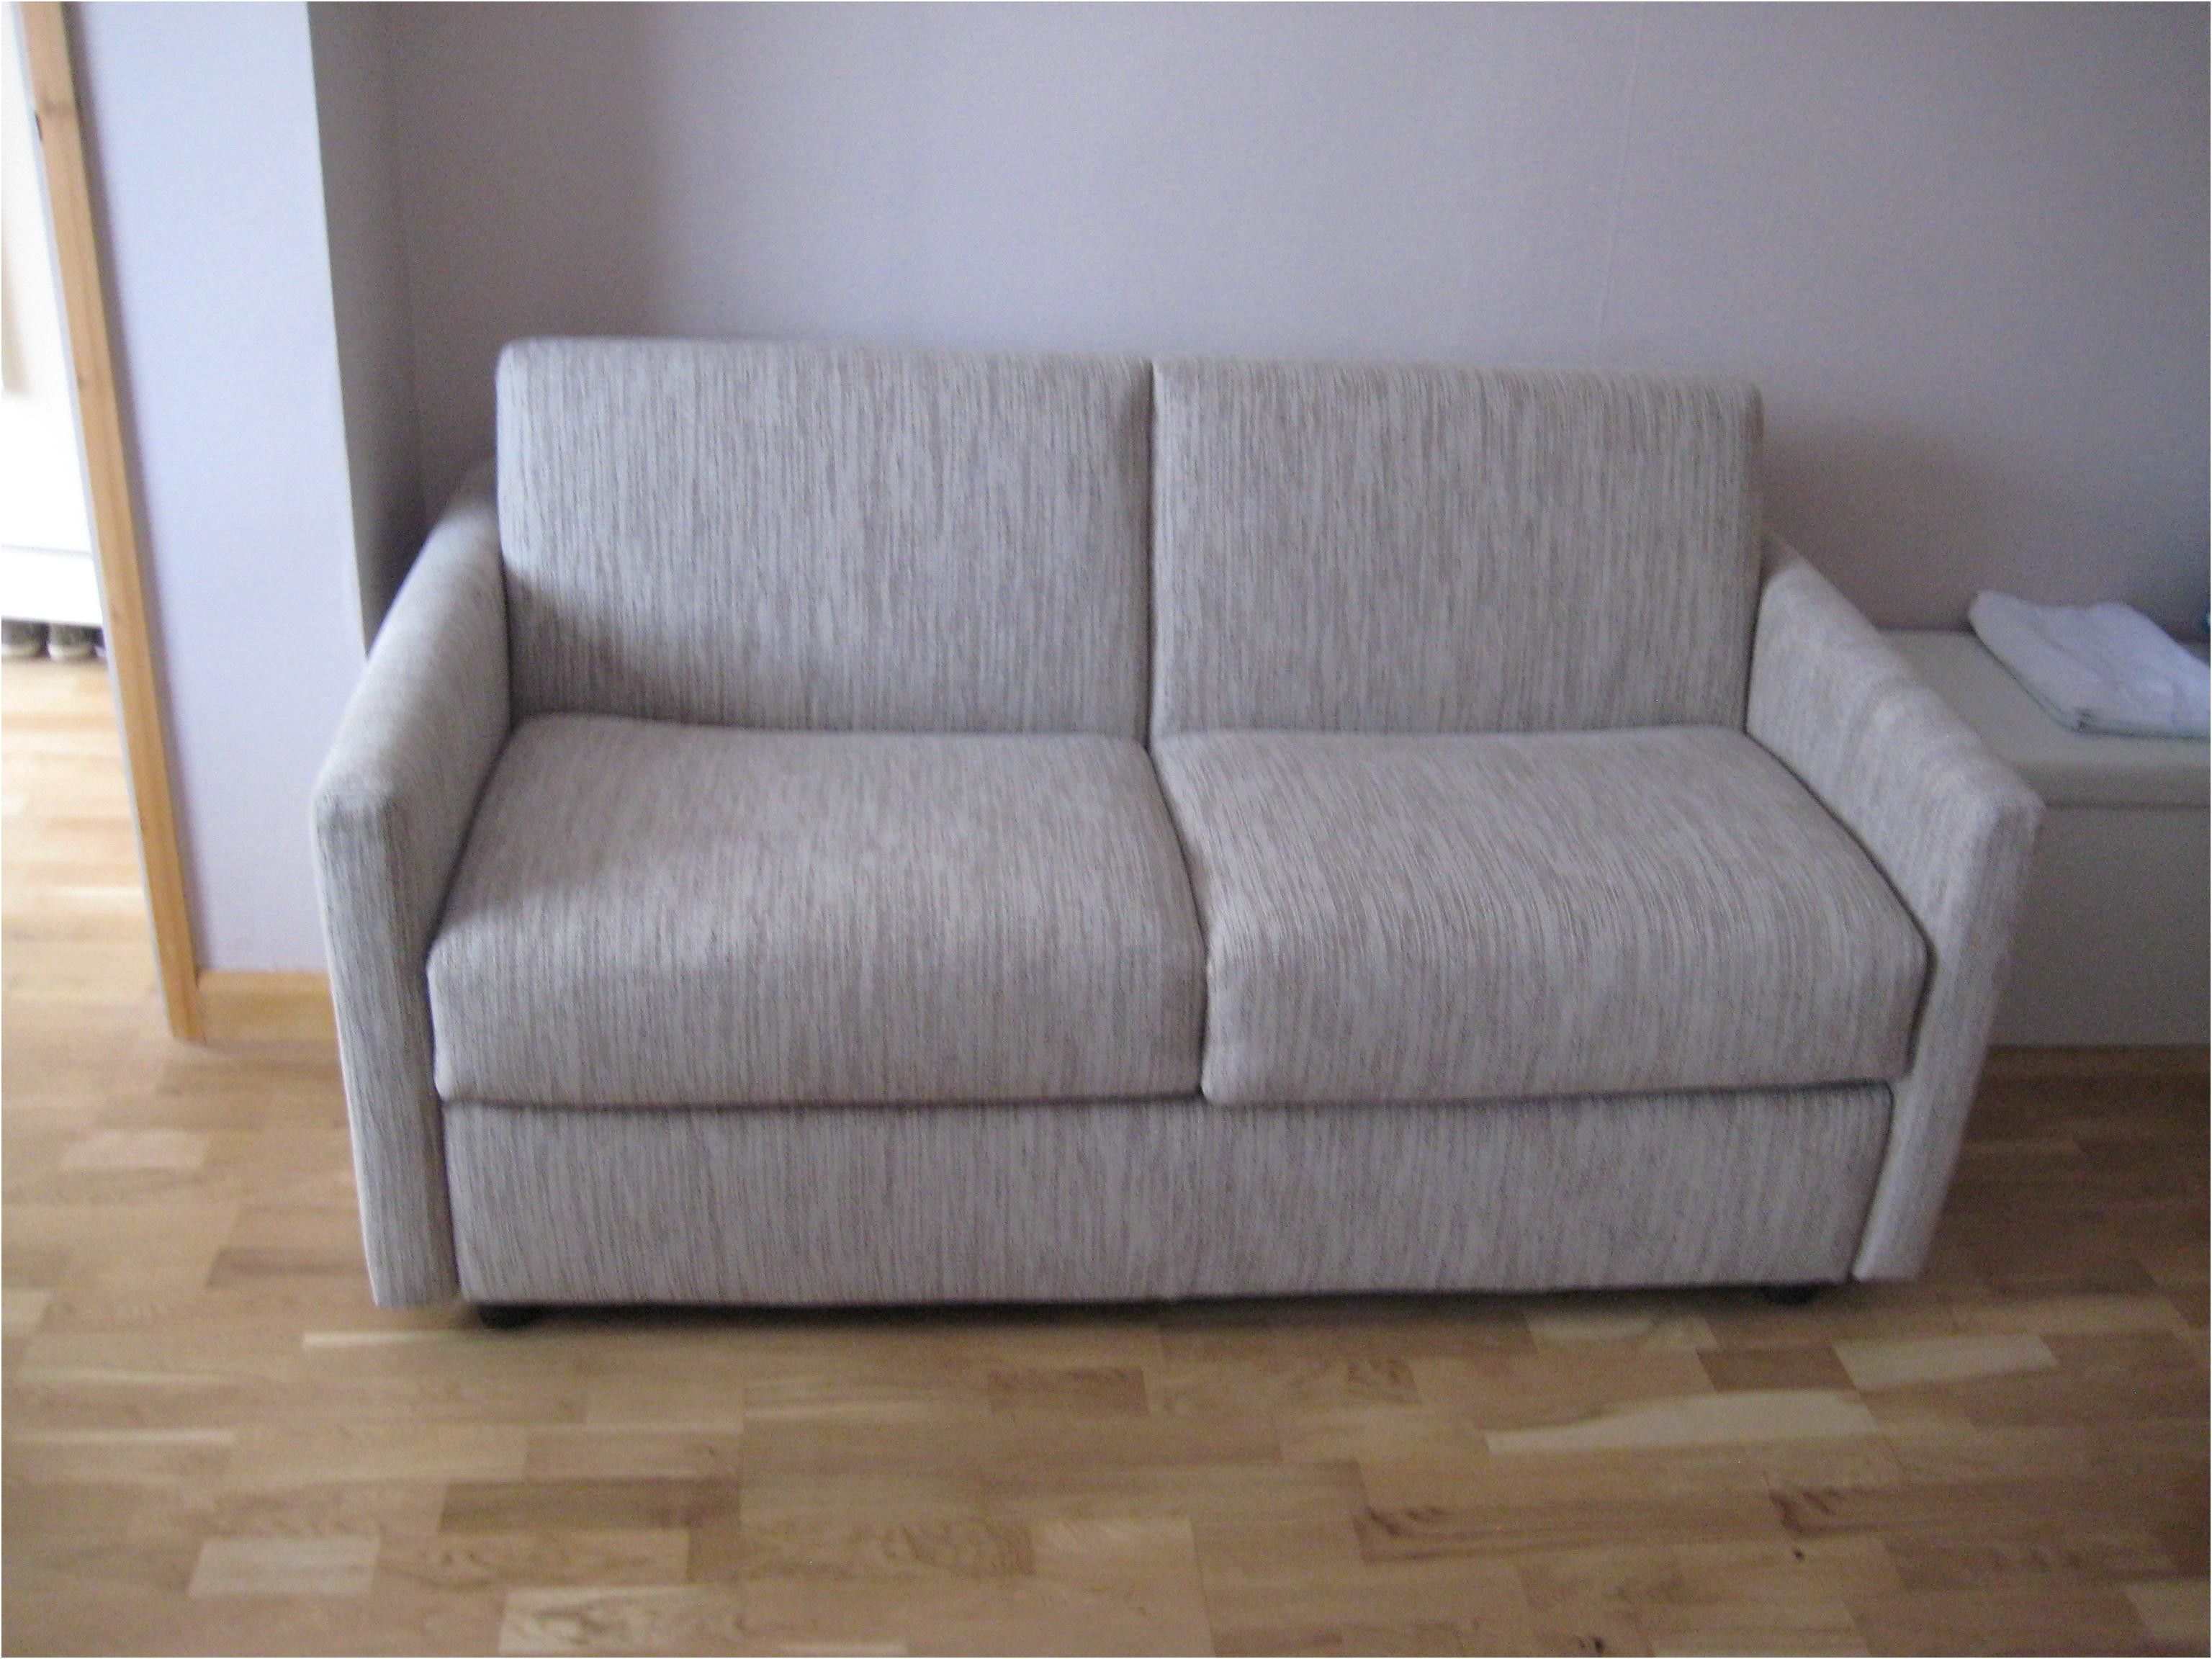 Ikea Tidafors Ecksofa Typisch Ikea Sofa Mit Schlaffunktion Check More At Https